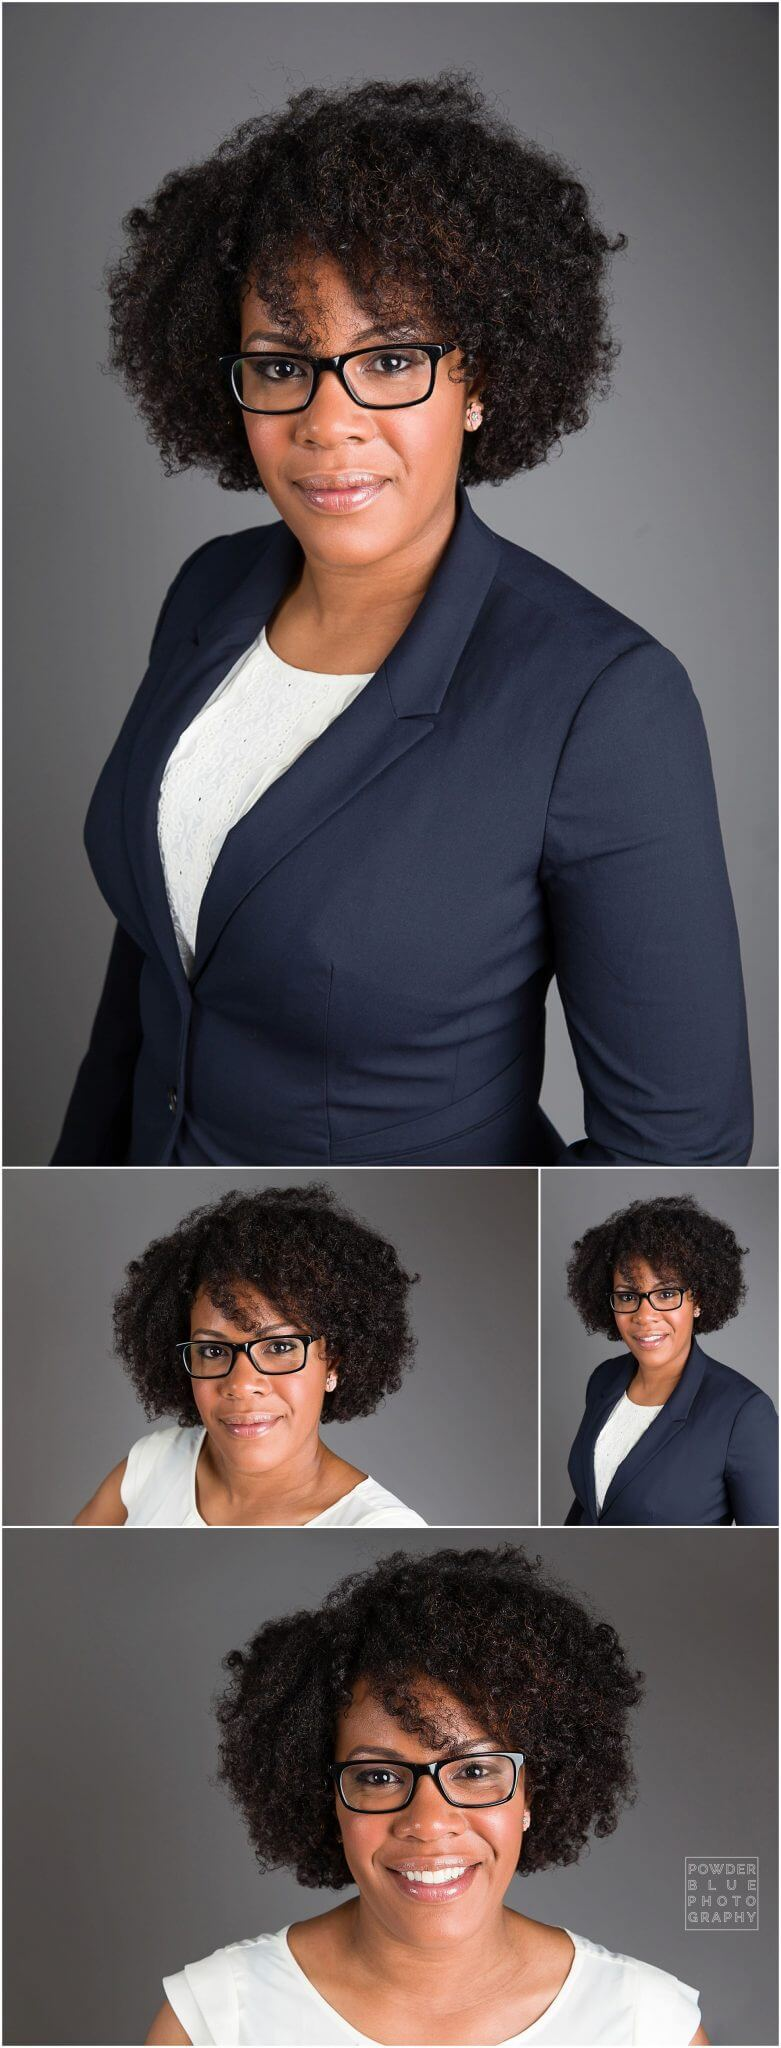 pittsburgh headshot photographer studio professional corporate portrait grey simple clean backdrop pittsburgh